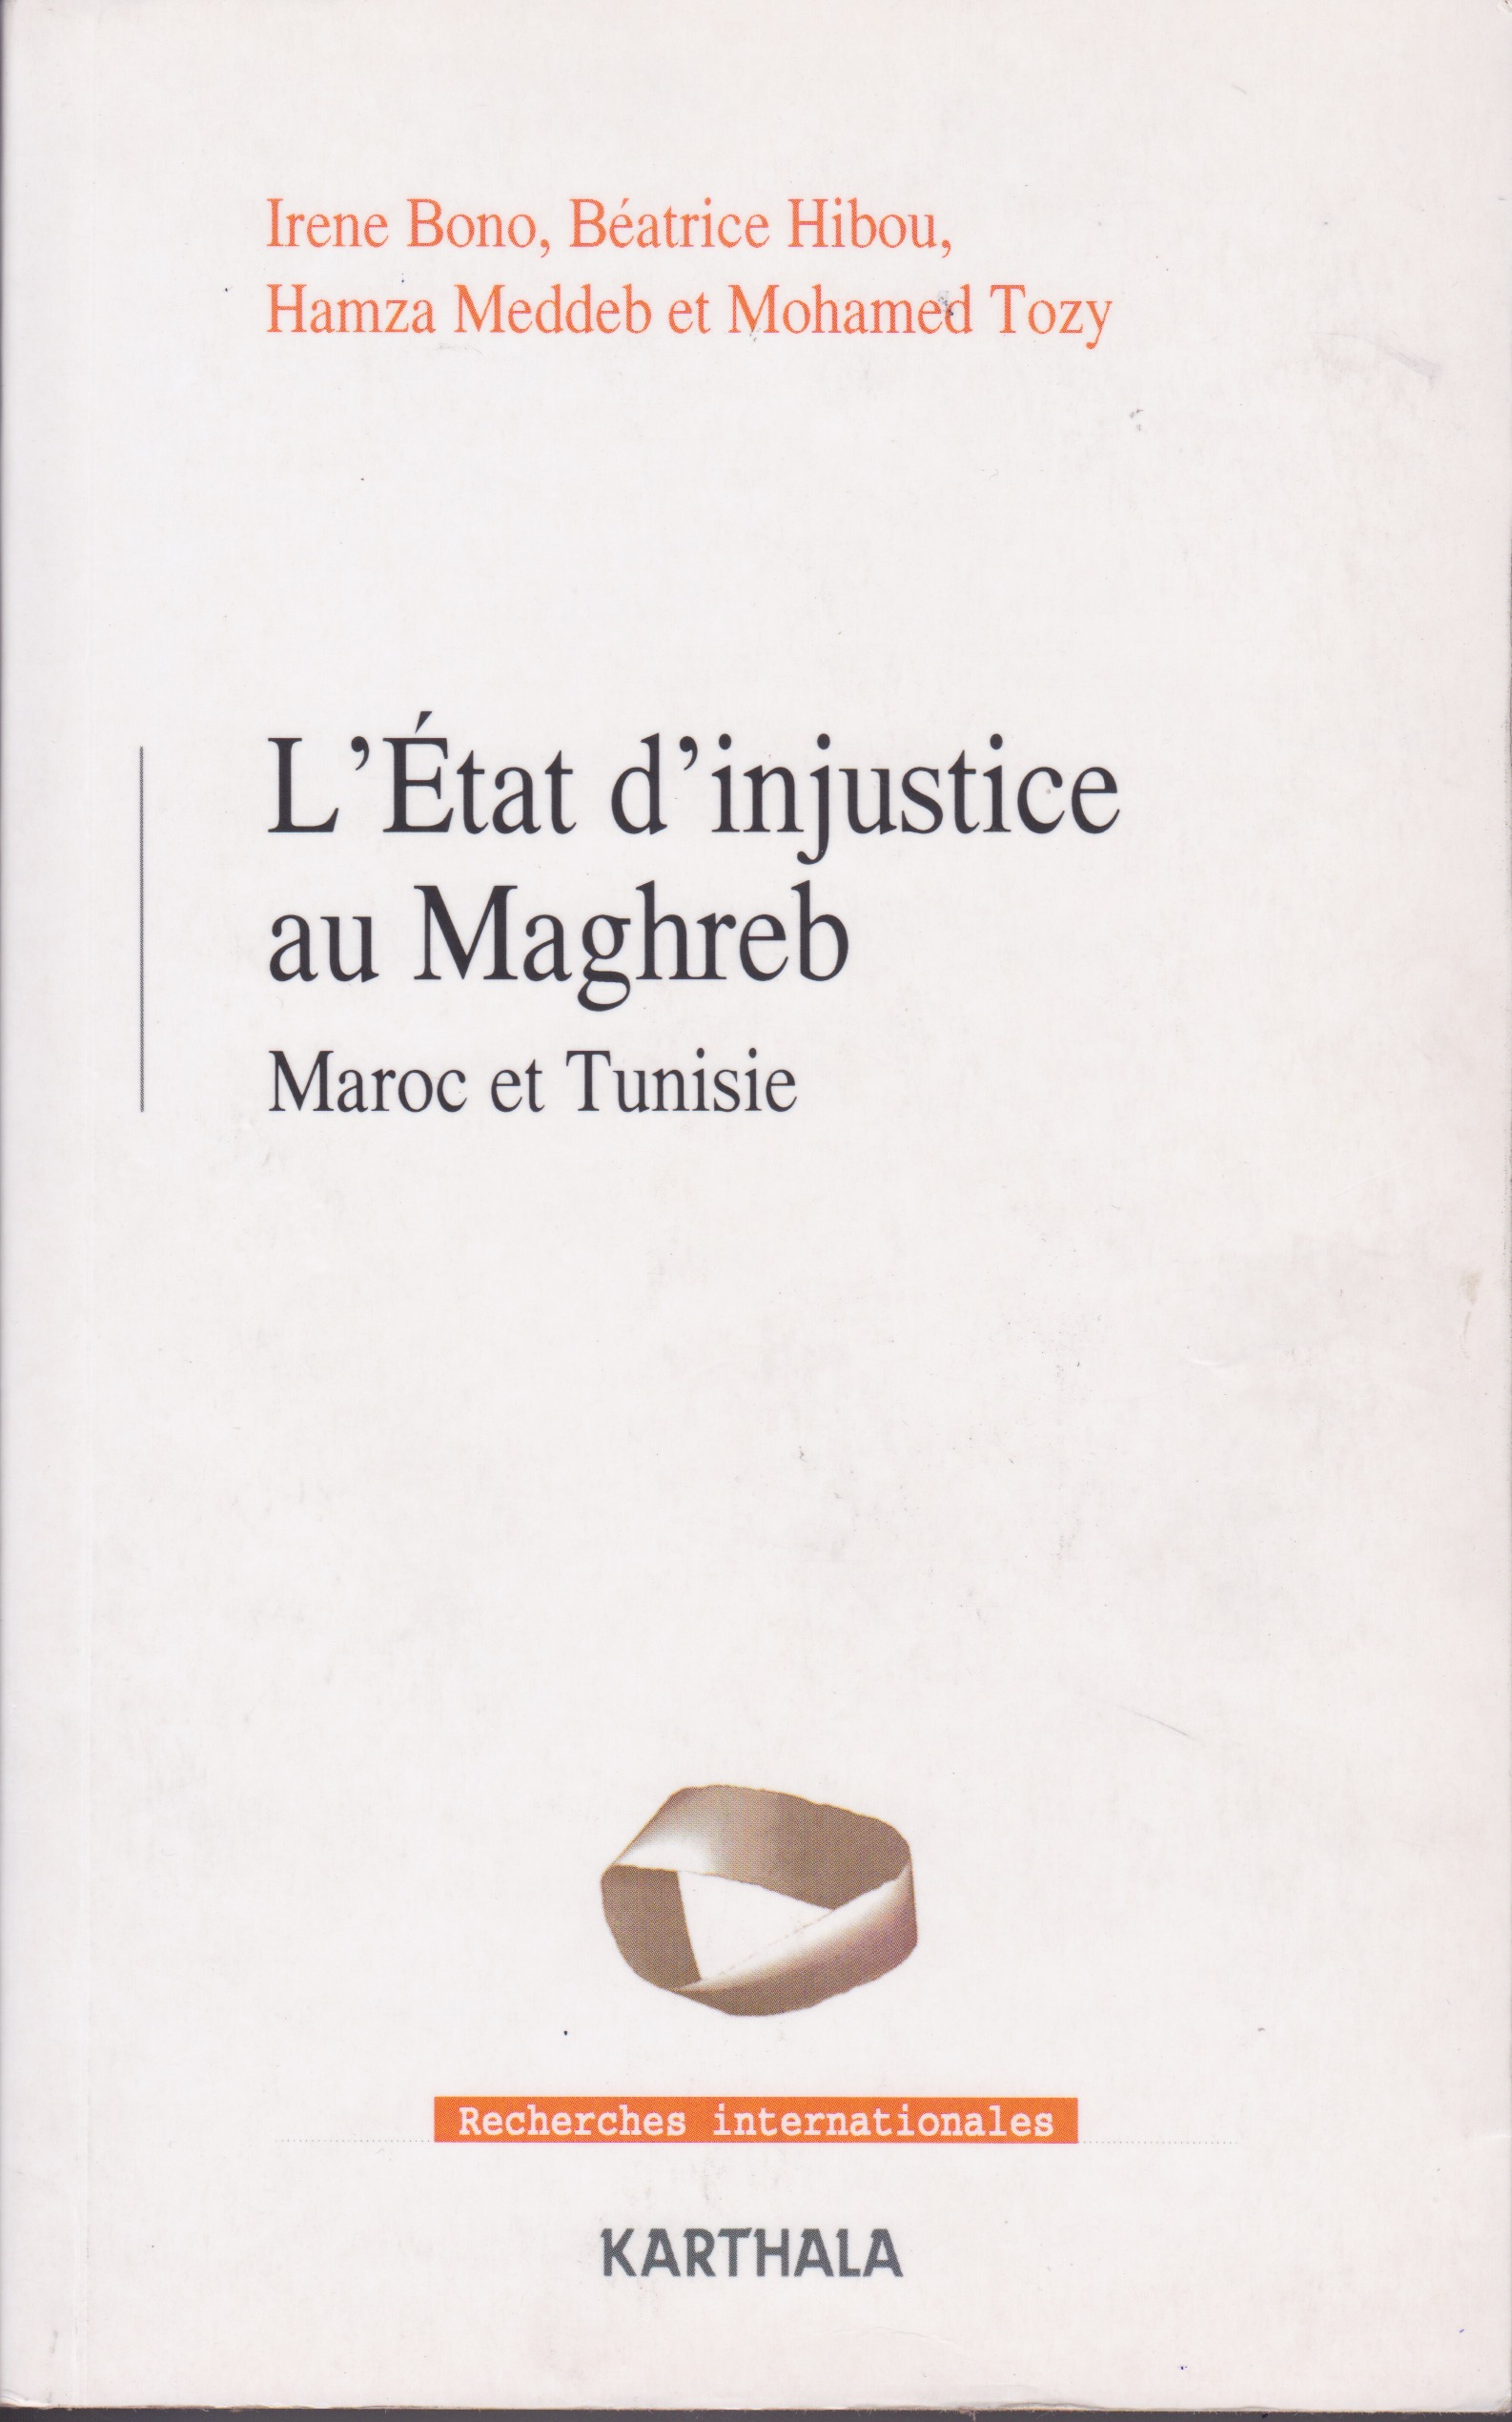 La fabrique de l'injustice